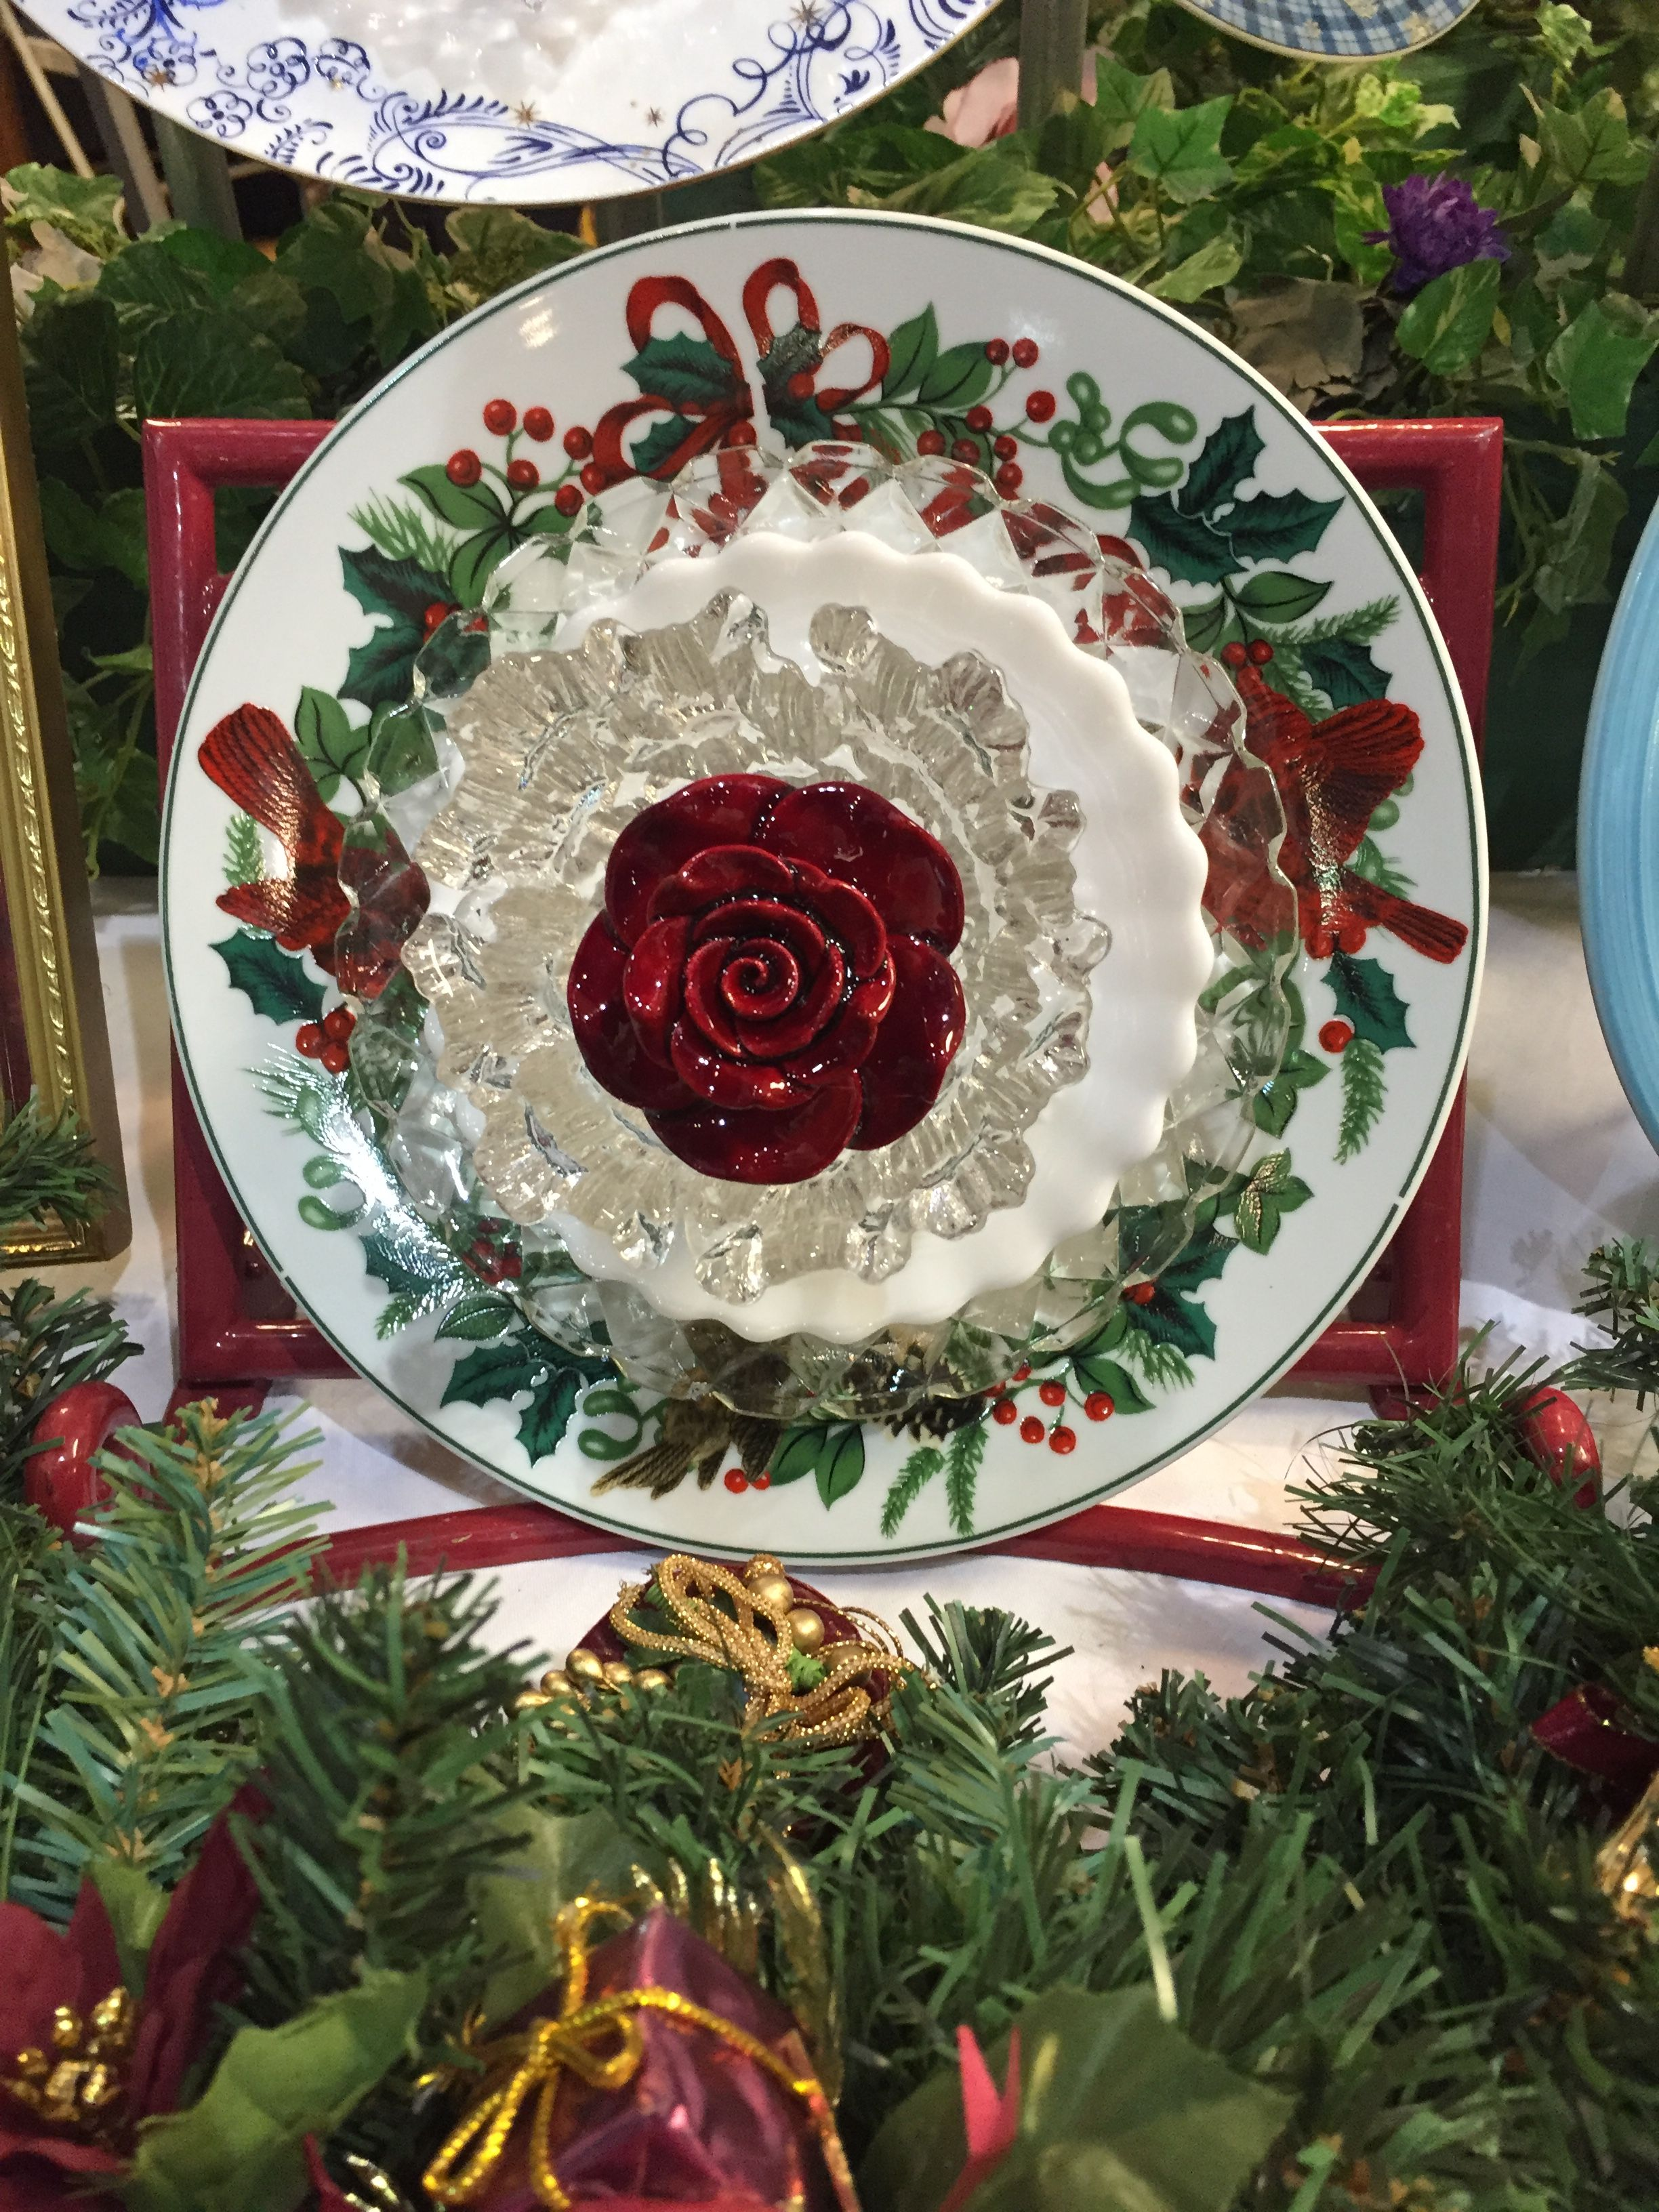 A stunning Christmas plate flower that can be displayed in the